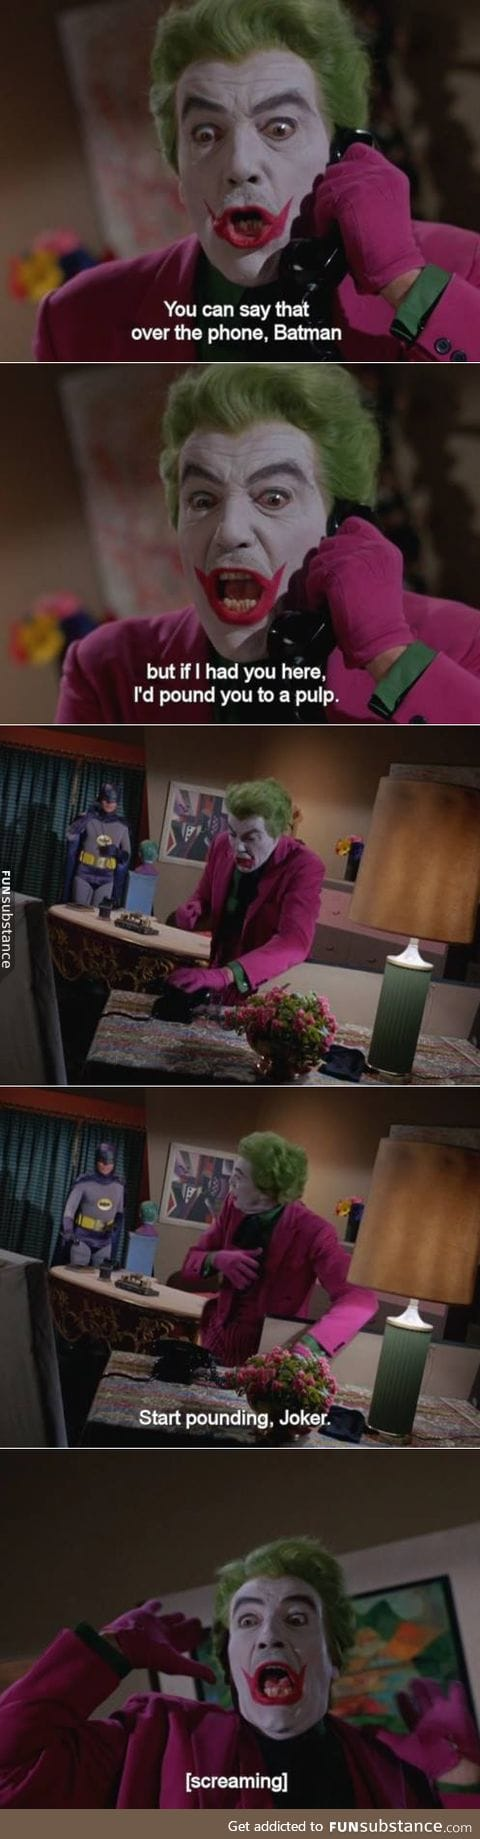 Do it joker